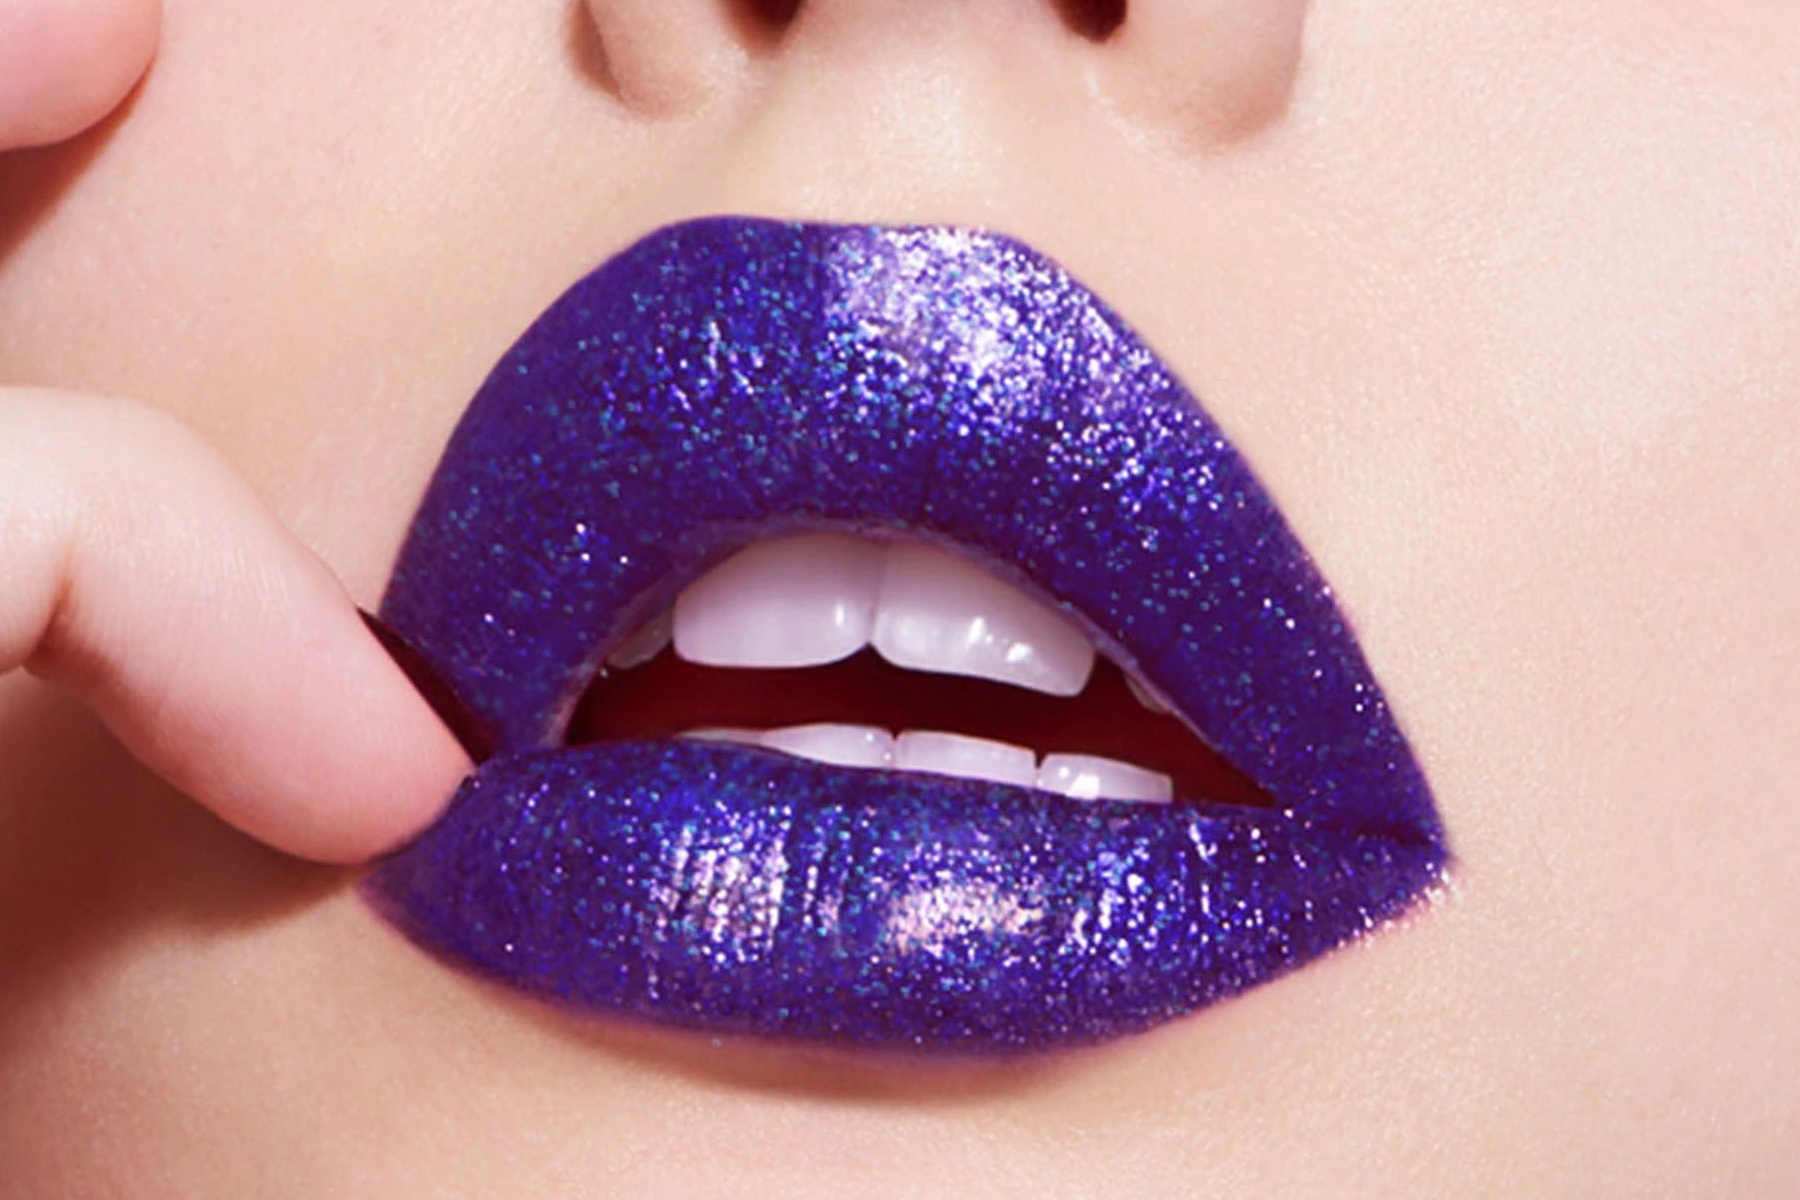 dior-addict-lacquer-plump-midnight-star-swatch